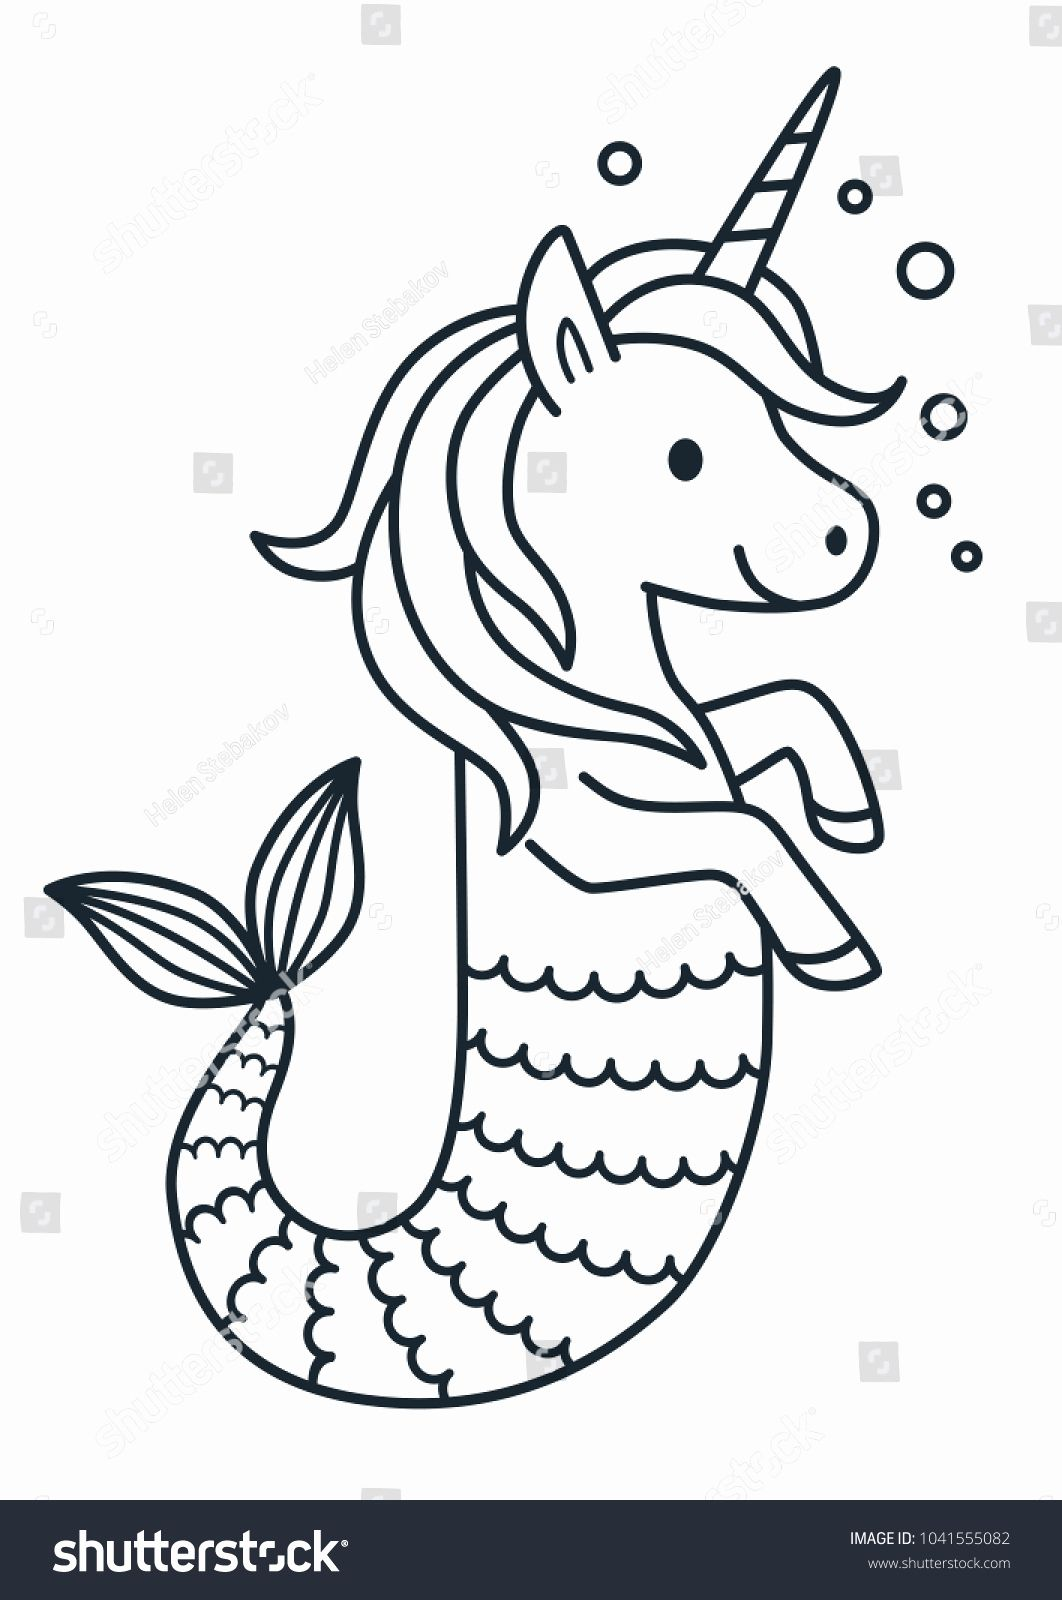 Unicorn Mermaid Coloring Pages For Kids Mermaid Coloring Pages Mermaid Coloring Book Unicorn Coloring Pages